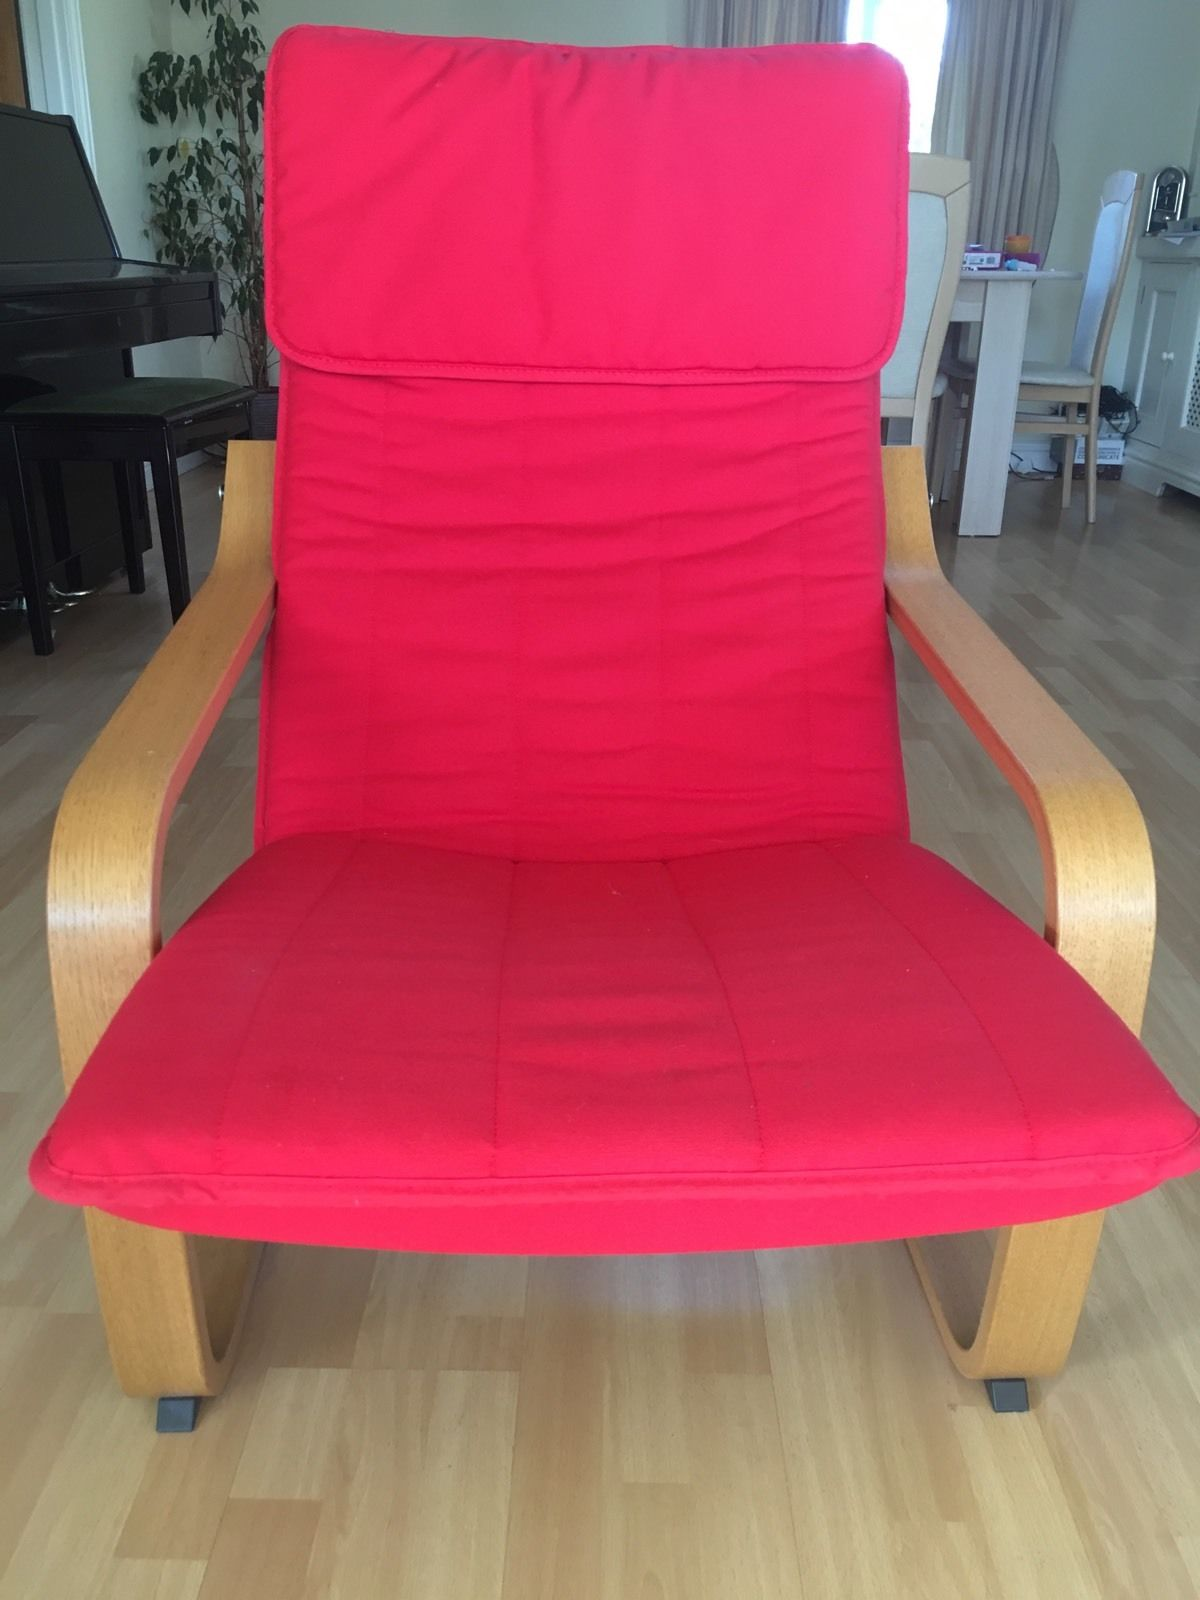 ikea-poang-red-easy-lounge-chair-armchair